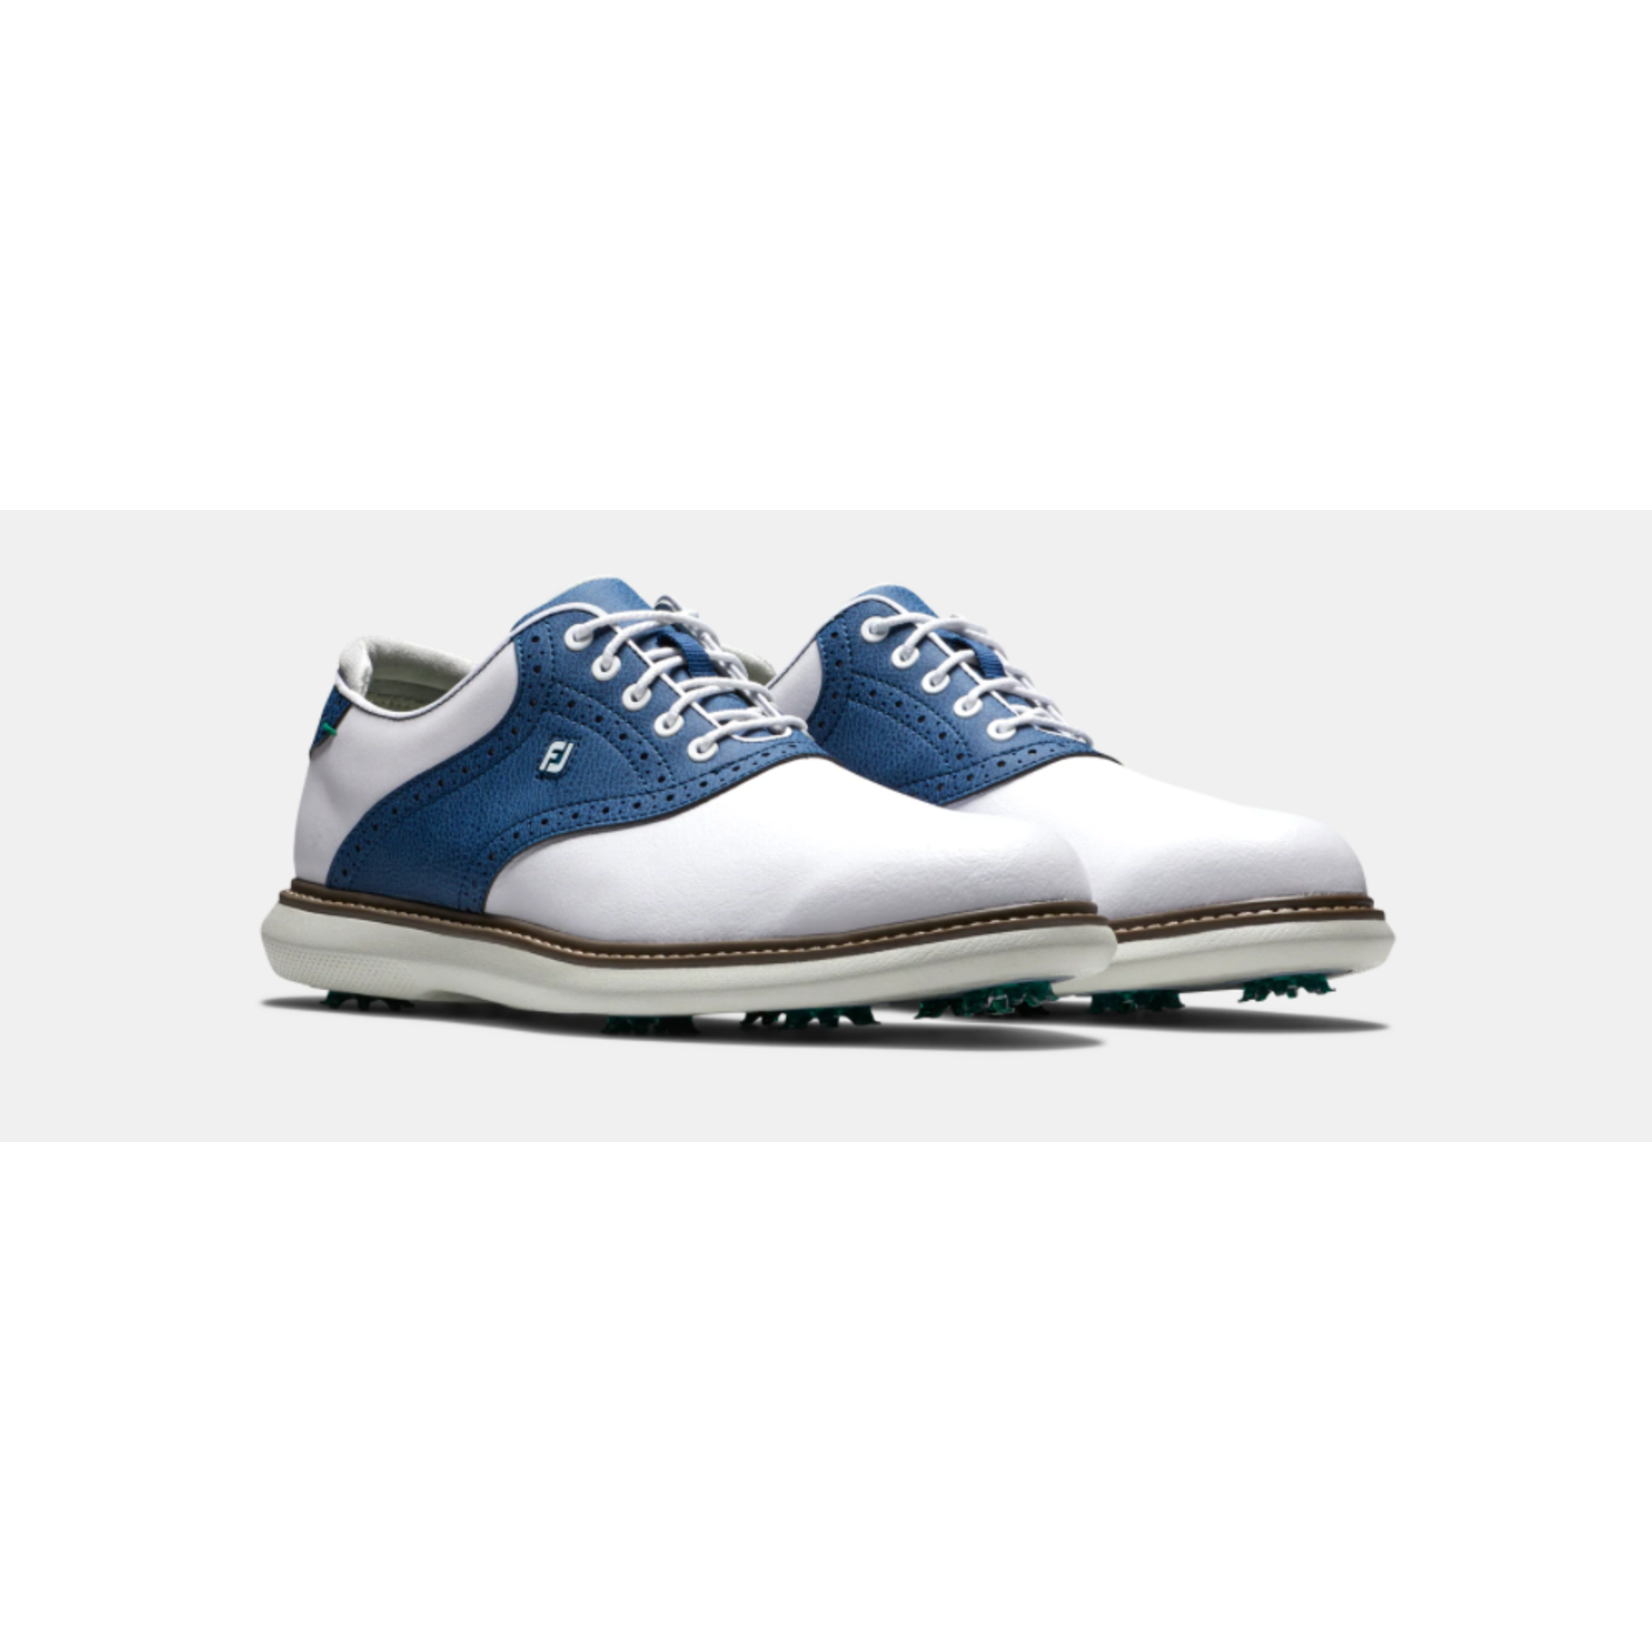 Footjoy Footjoy Traditions '21 Mens